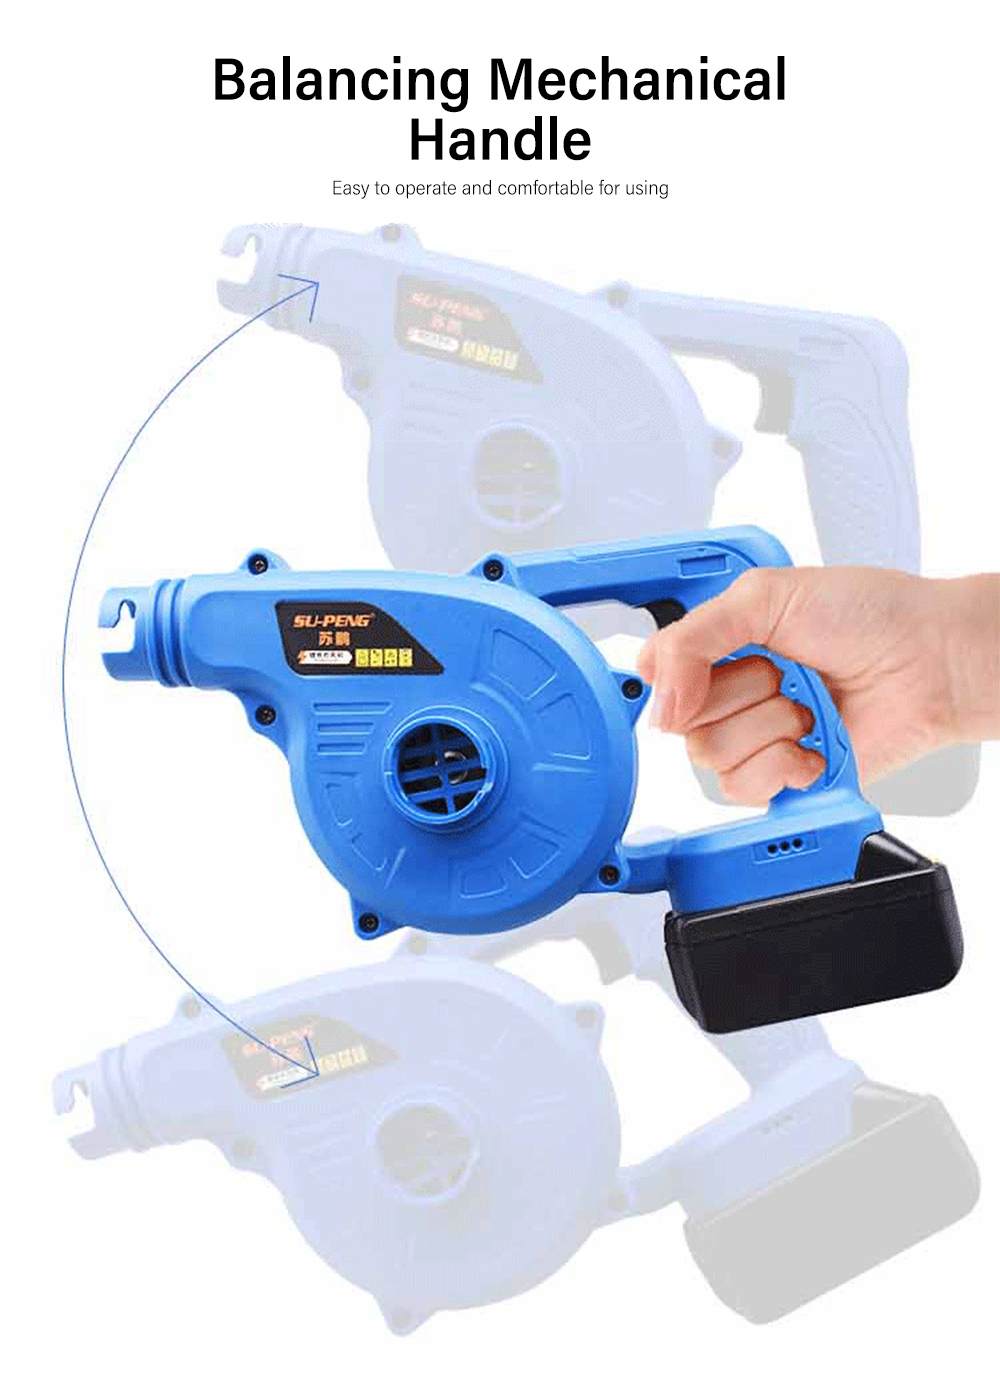 29800mAh Powerful Li-ion Battery Electric Air Blower Dust Collector